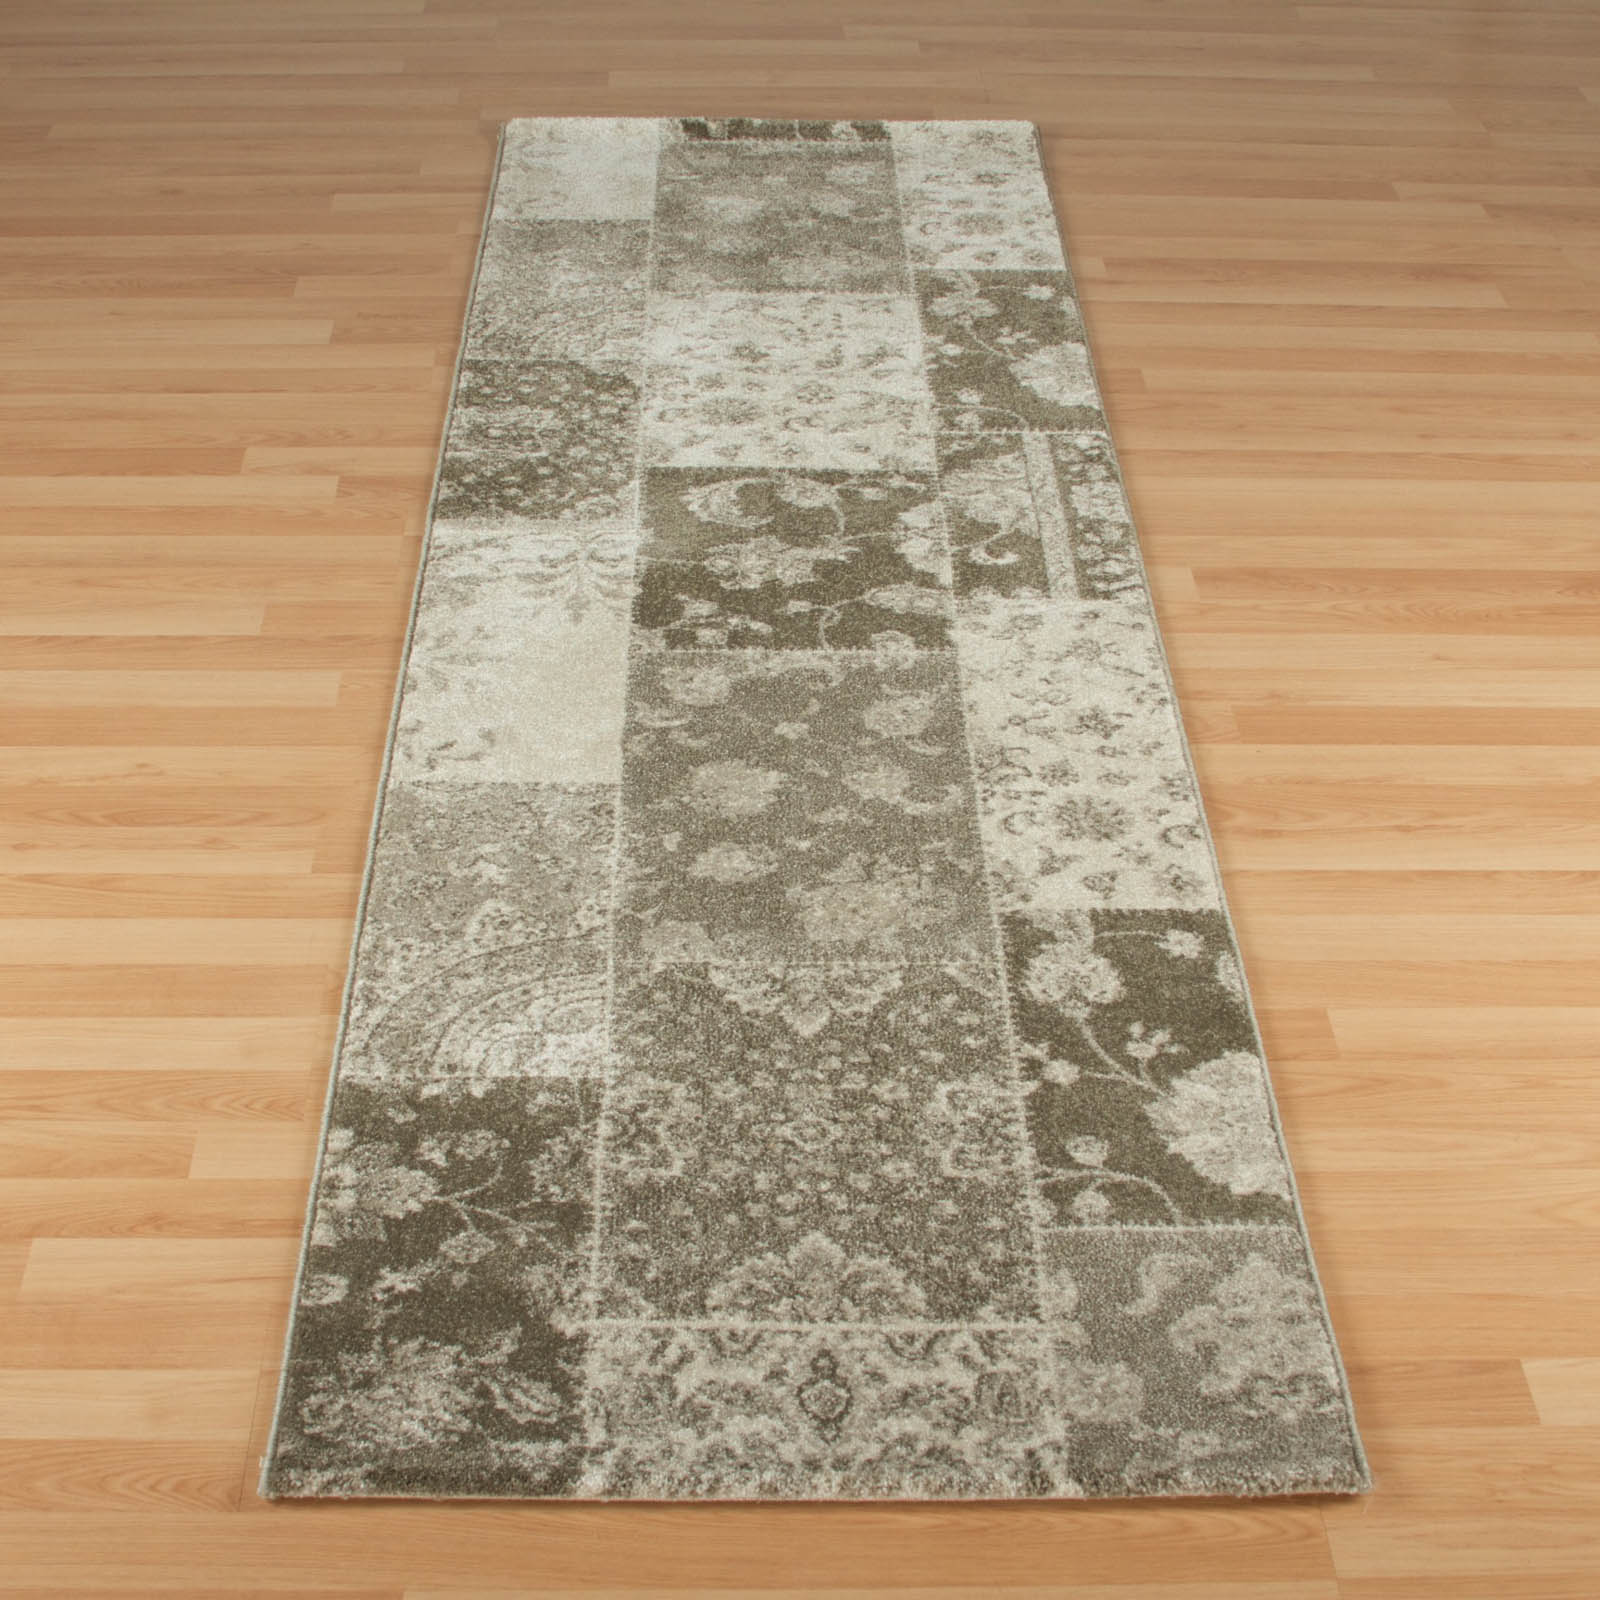 Richmond Hallway Runner 1338Y in Cream and Grey